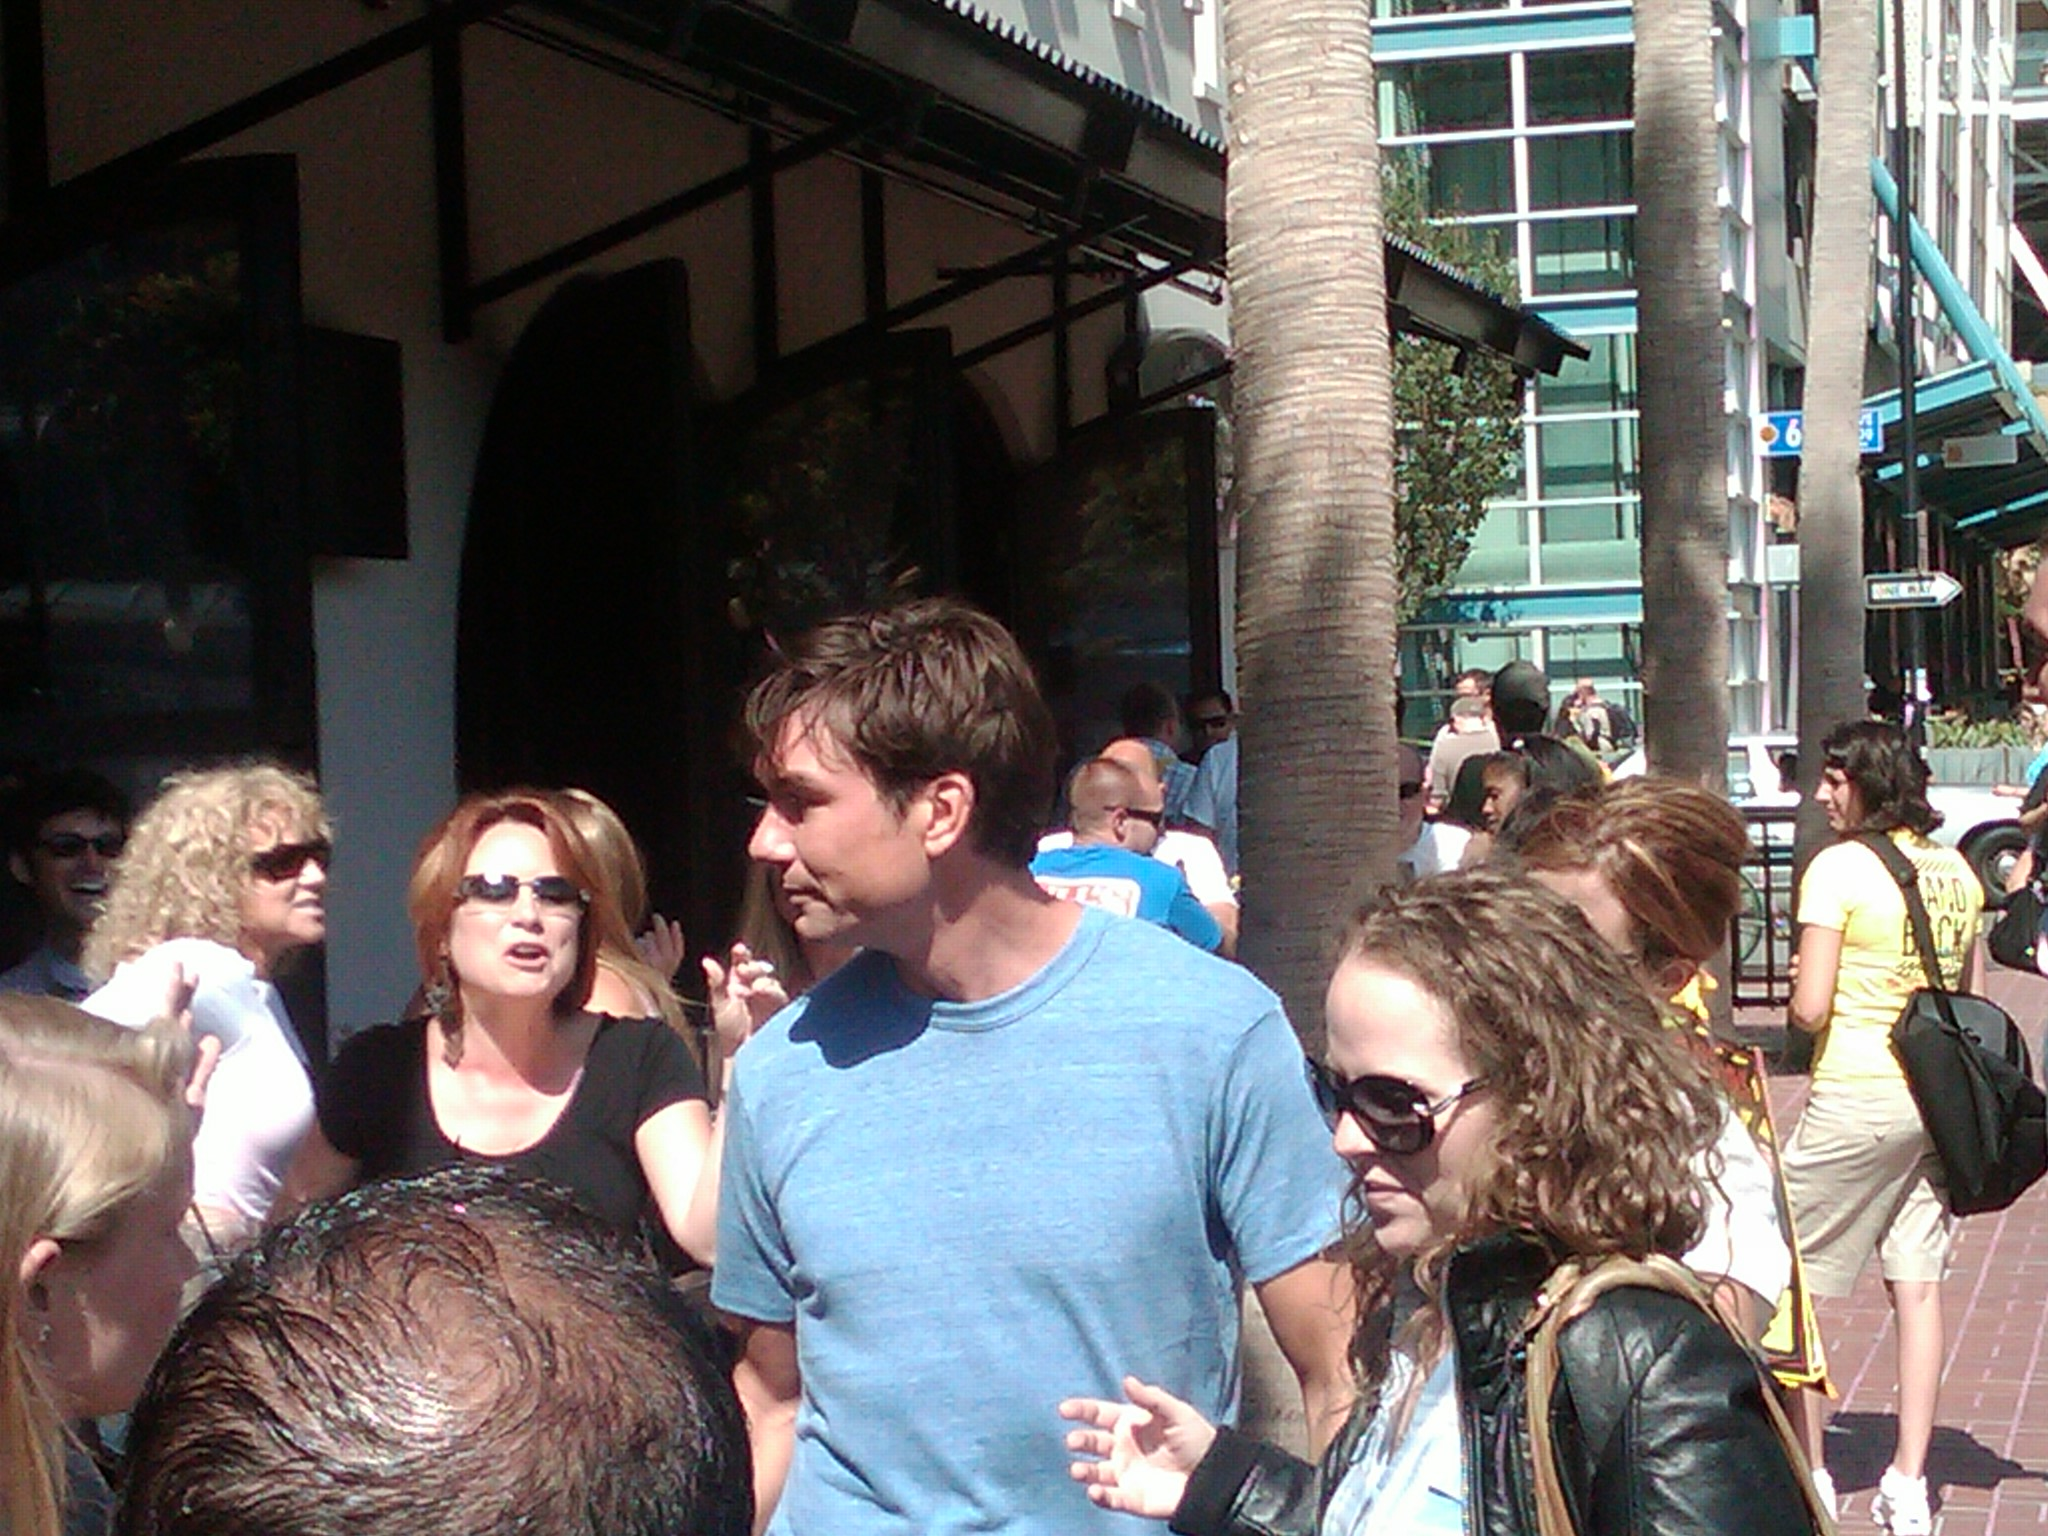 Actor Jerry O'Connell Comic-Con Downtown San Diego 92101